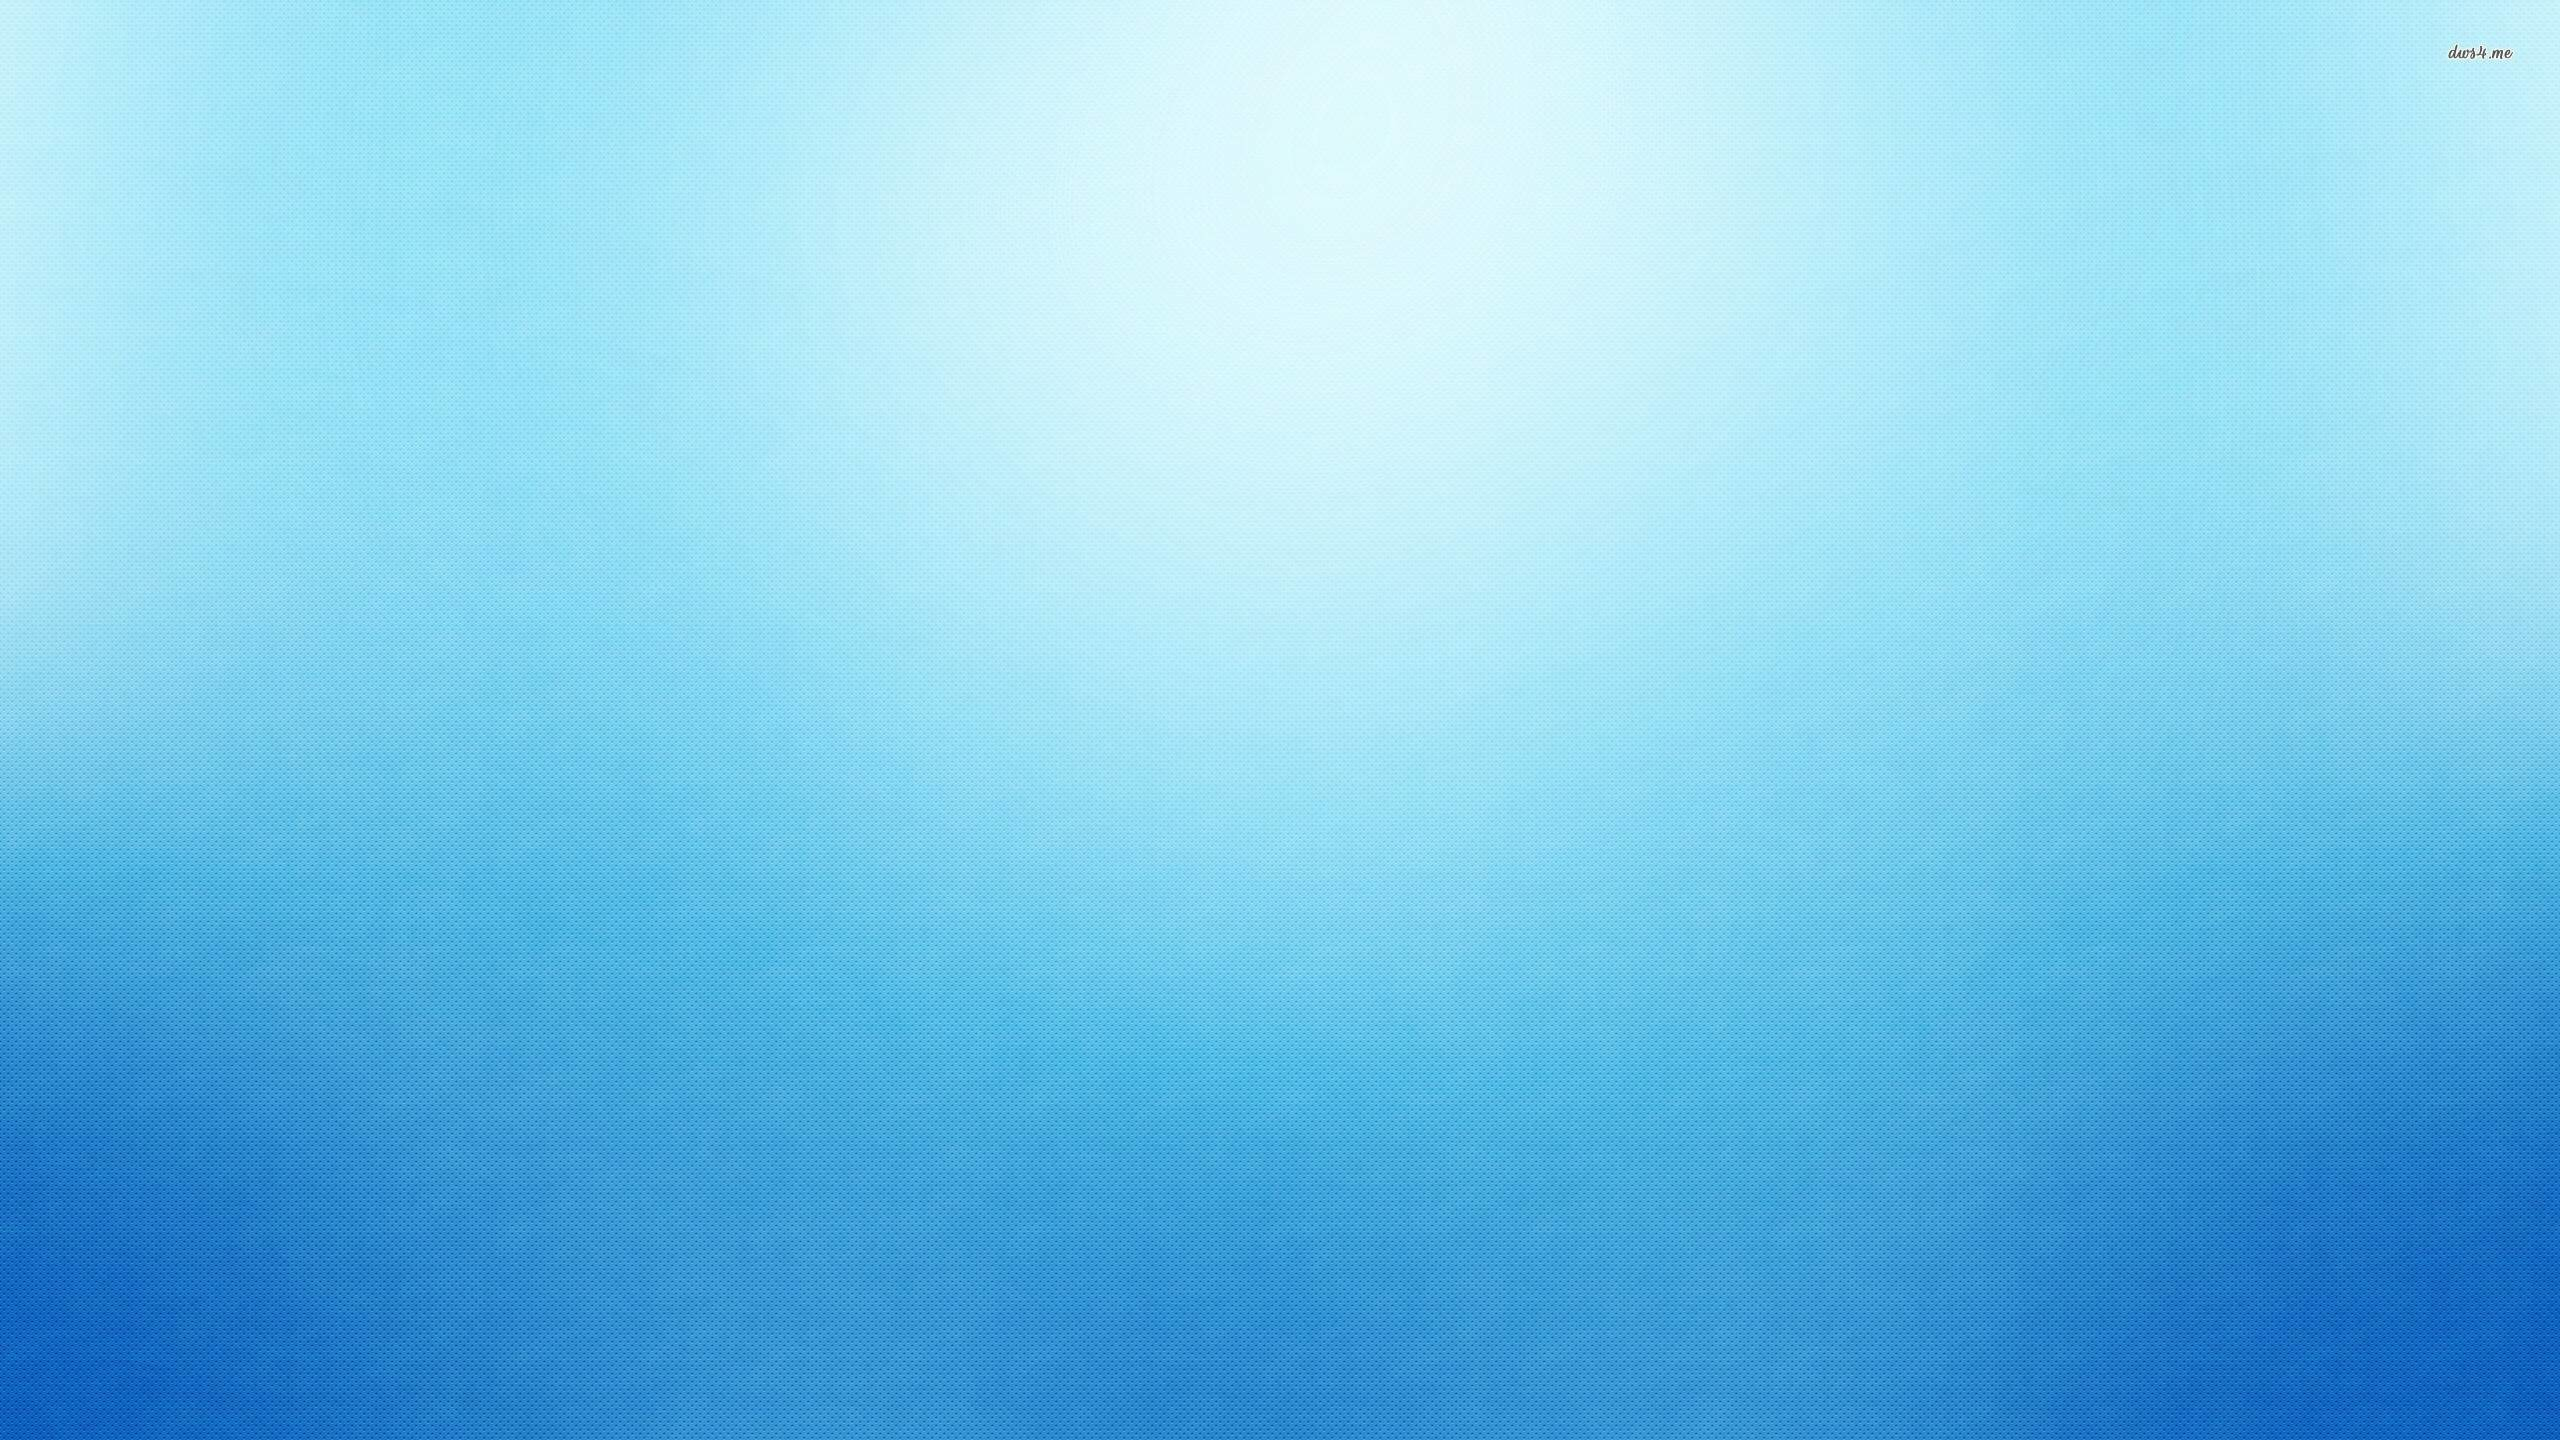 Exceptional 2560x1440 Light Blue Texture Wallpaper   Abstract Wallpapers   # Great Pictures